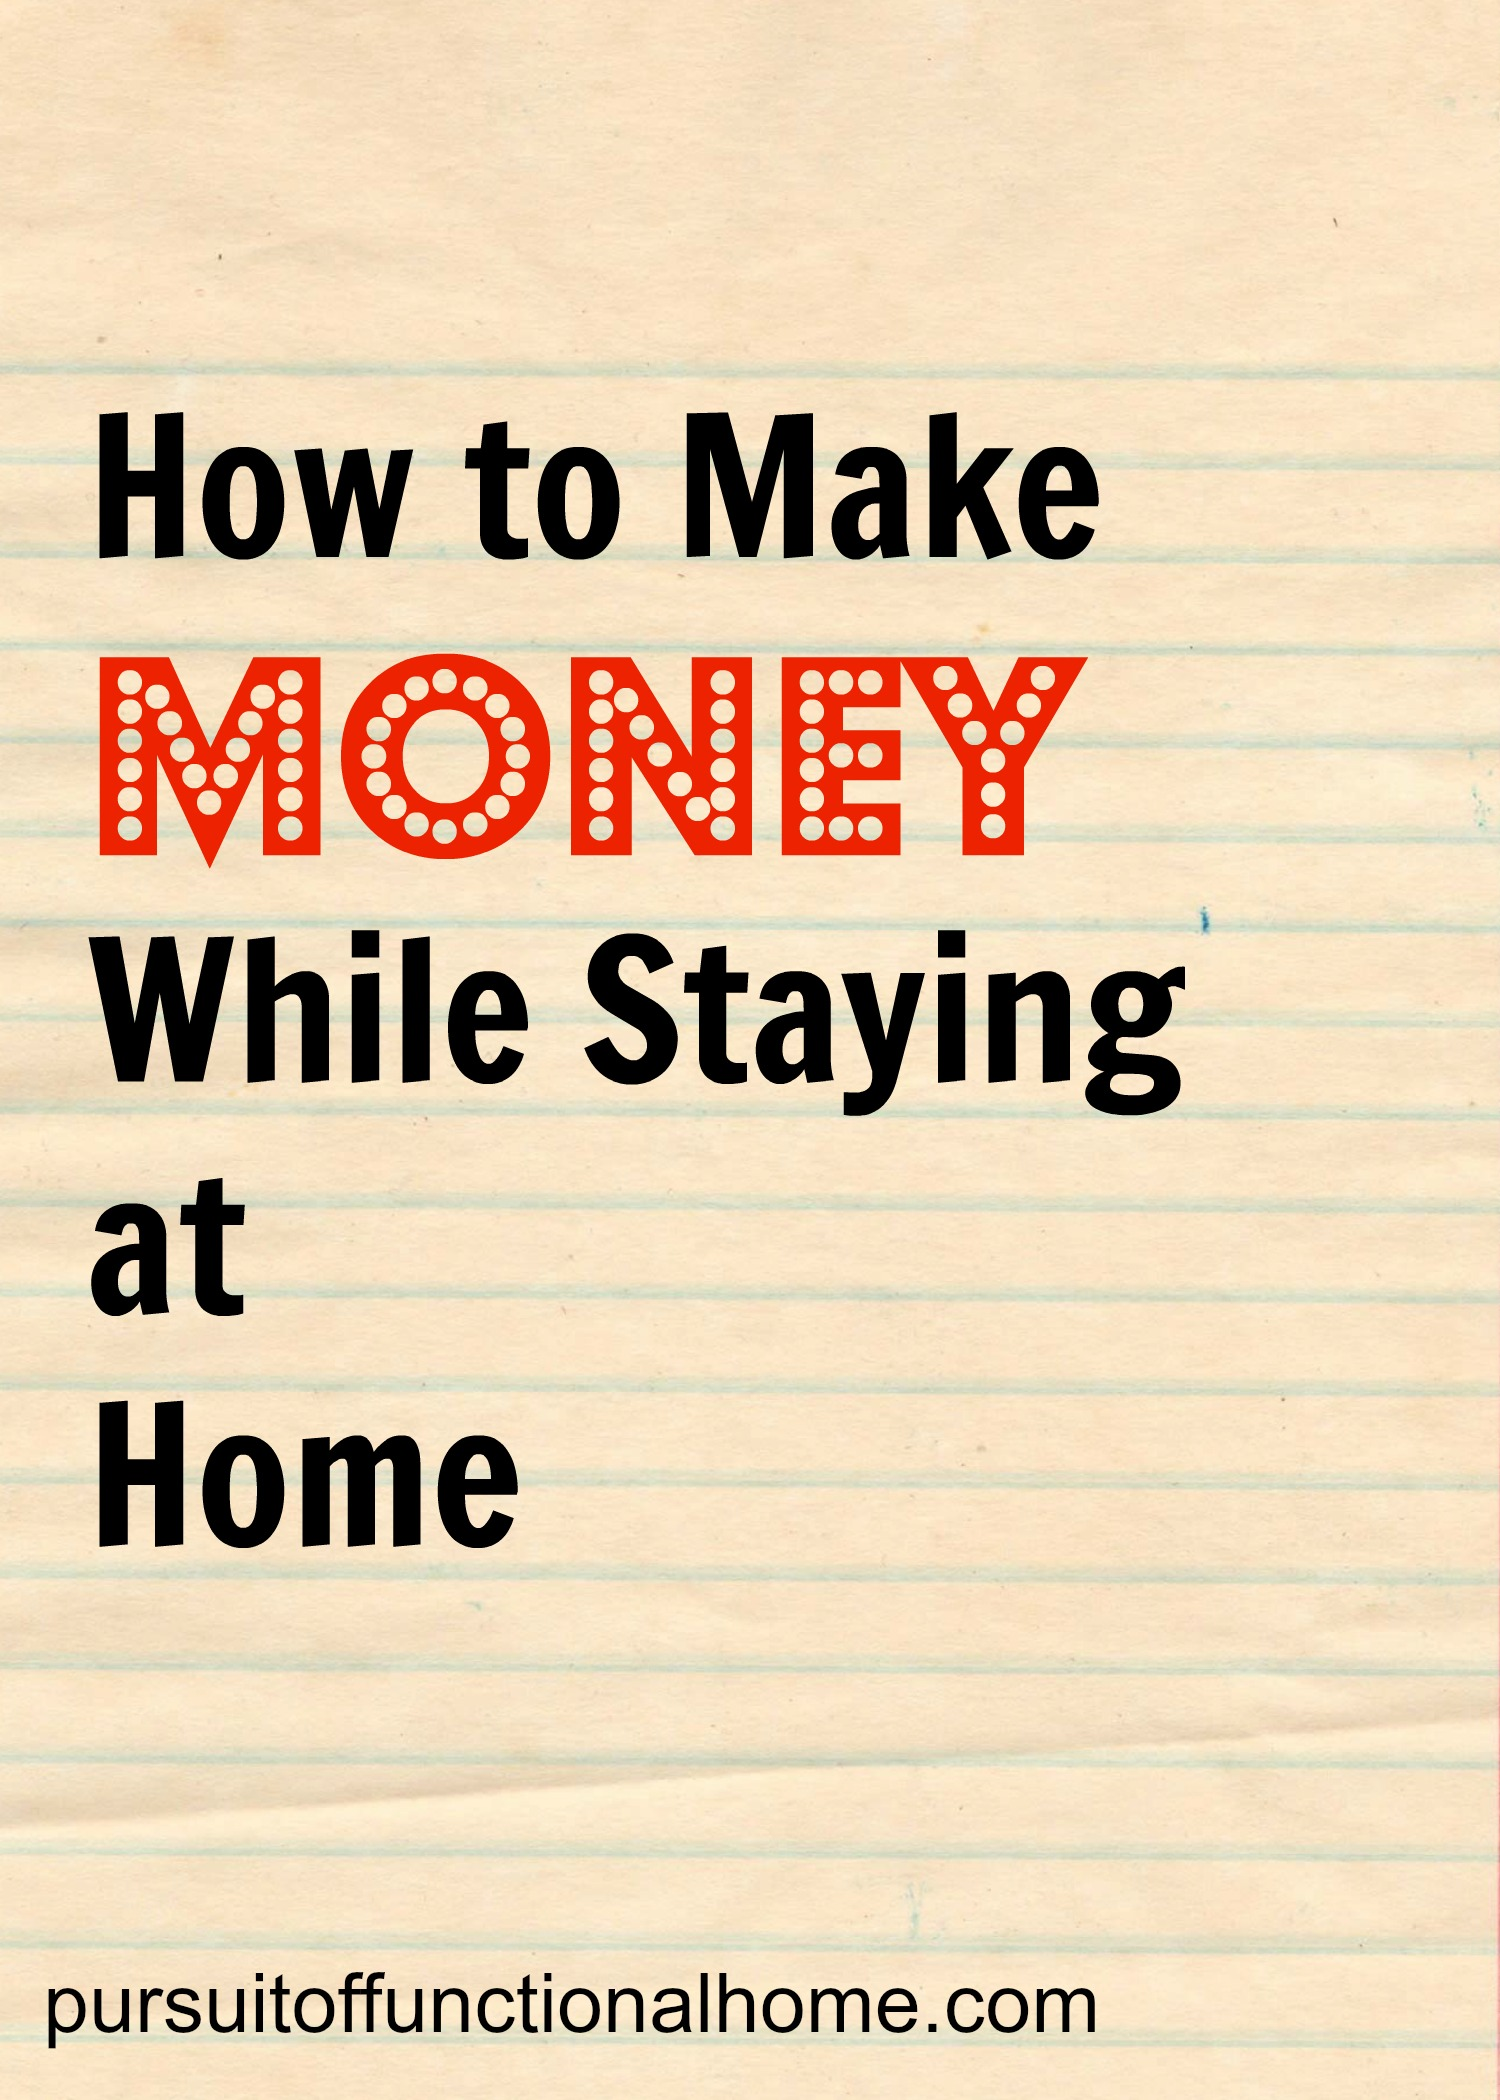 20 Genius Ways to Make Money at Home (Earn an Extra …